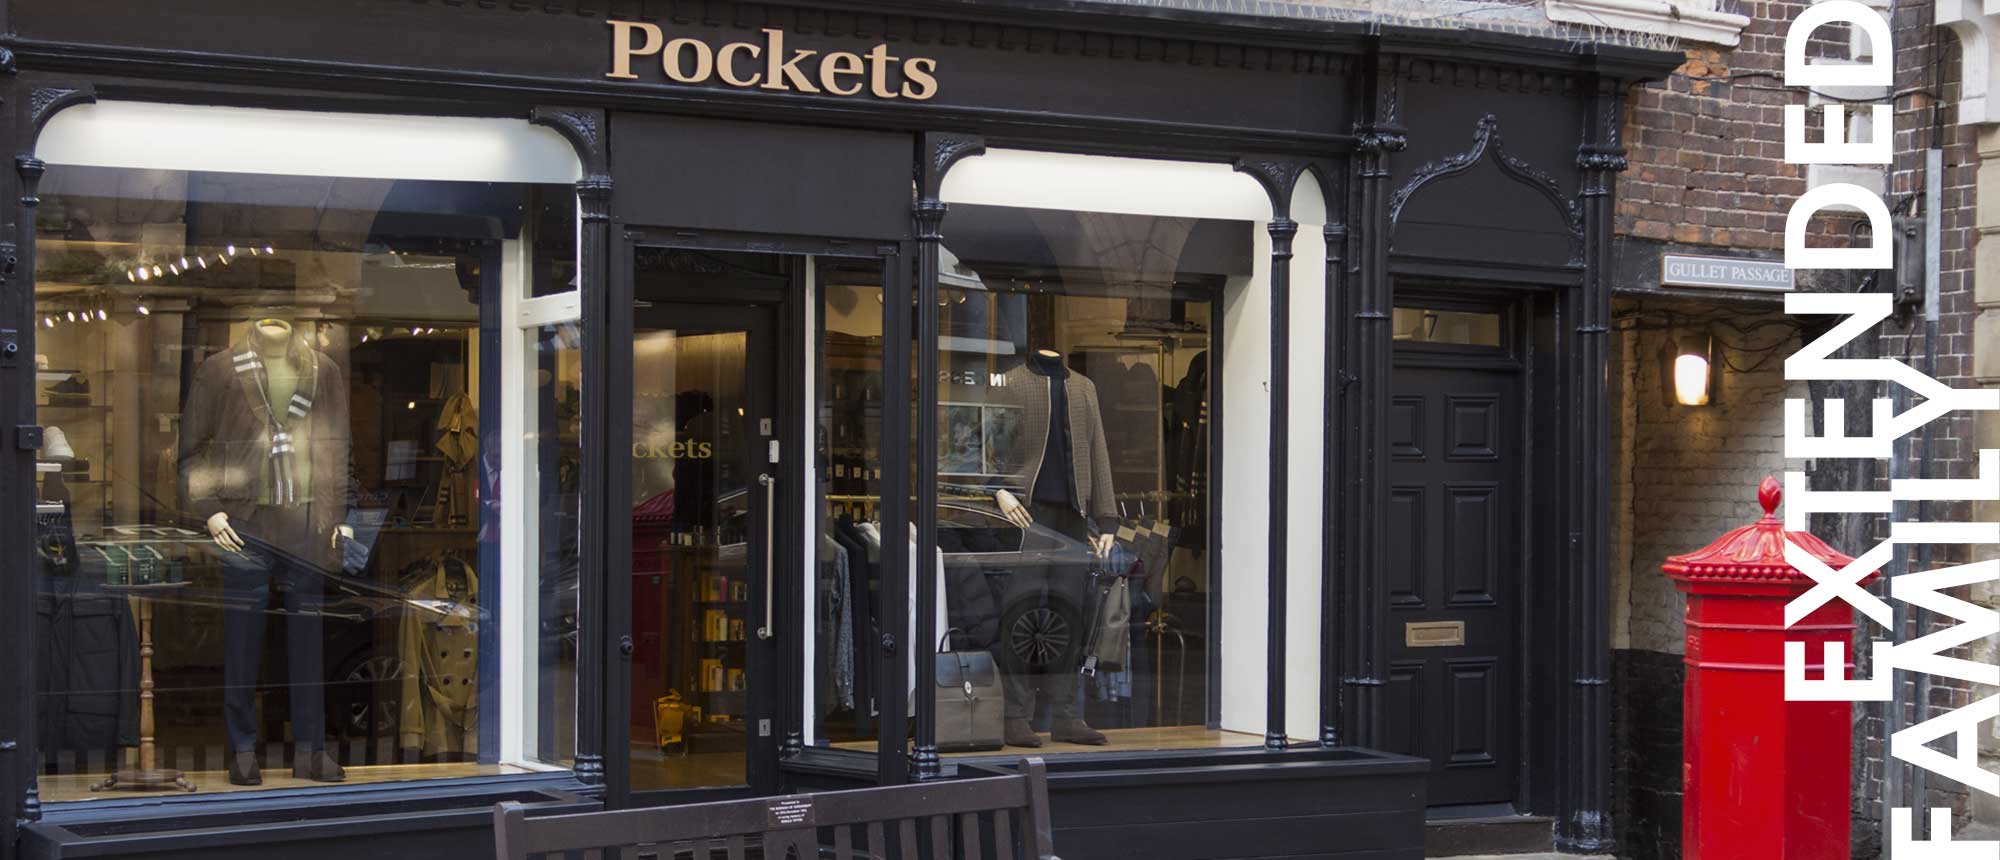 Crockett & Jones - Pockets, England